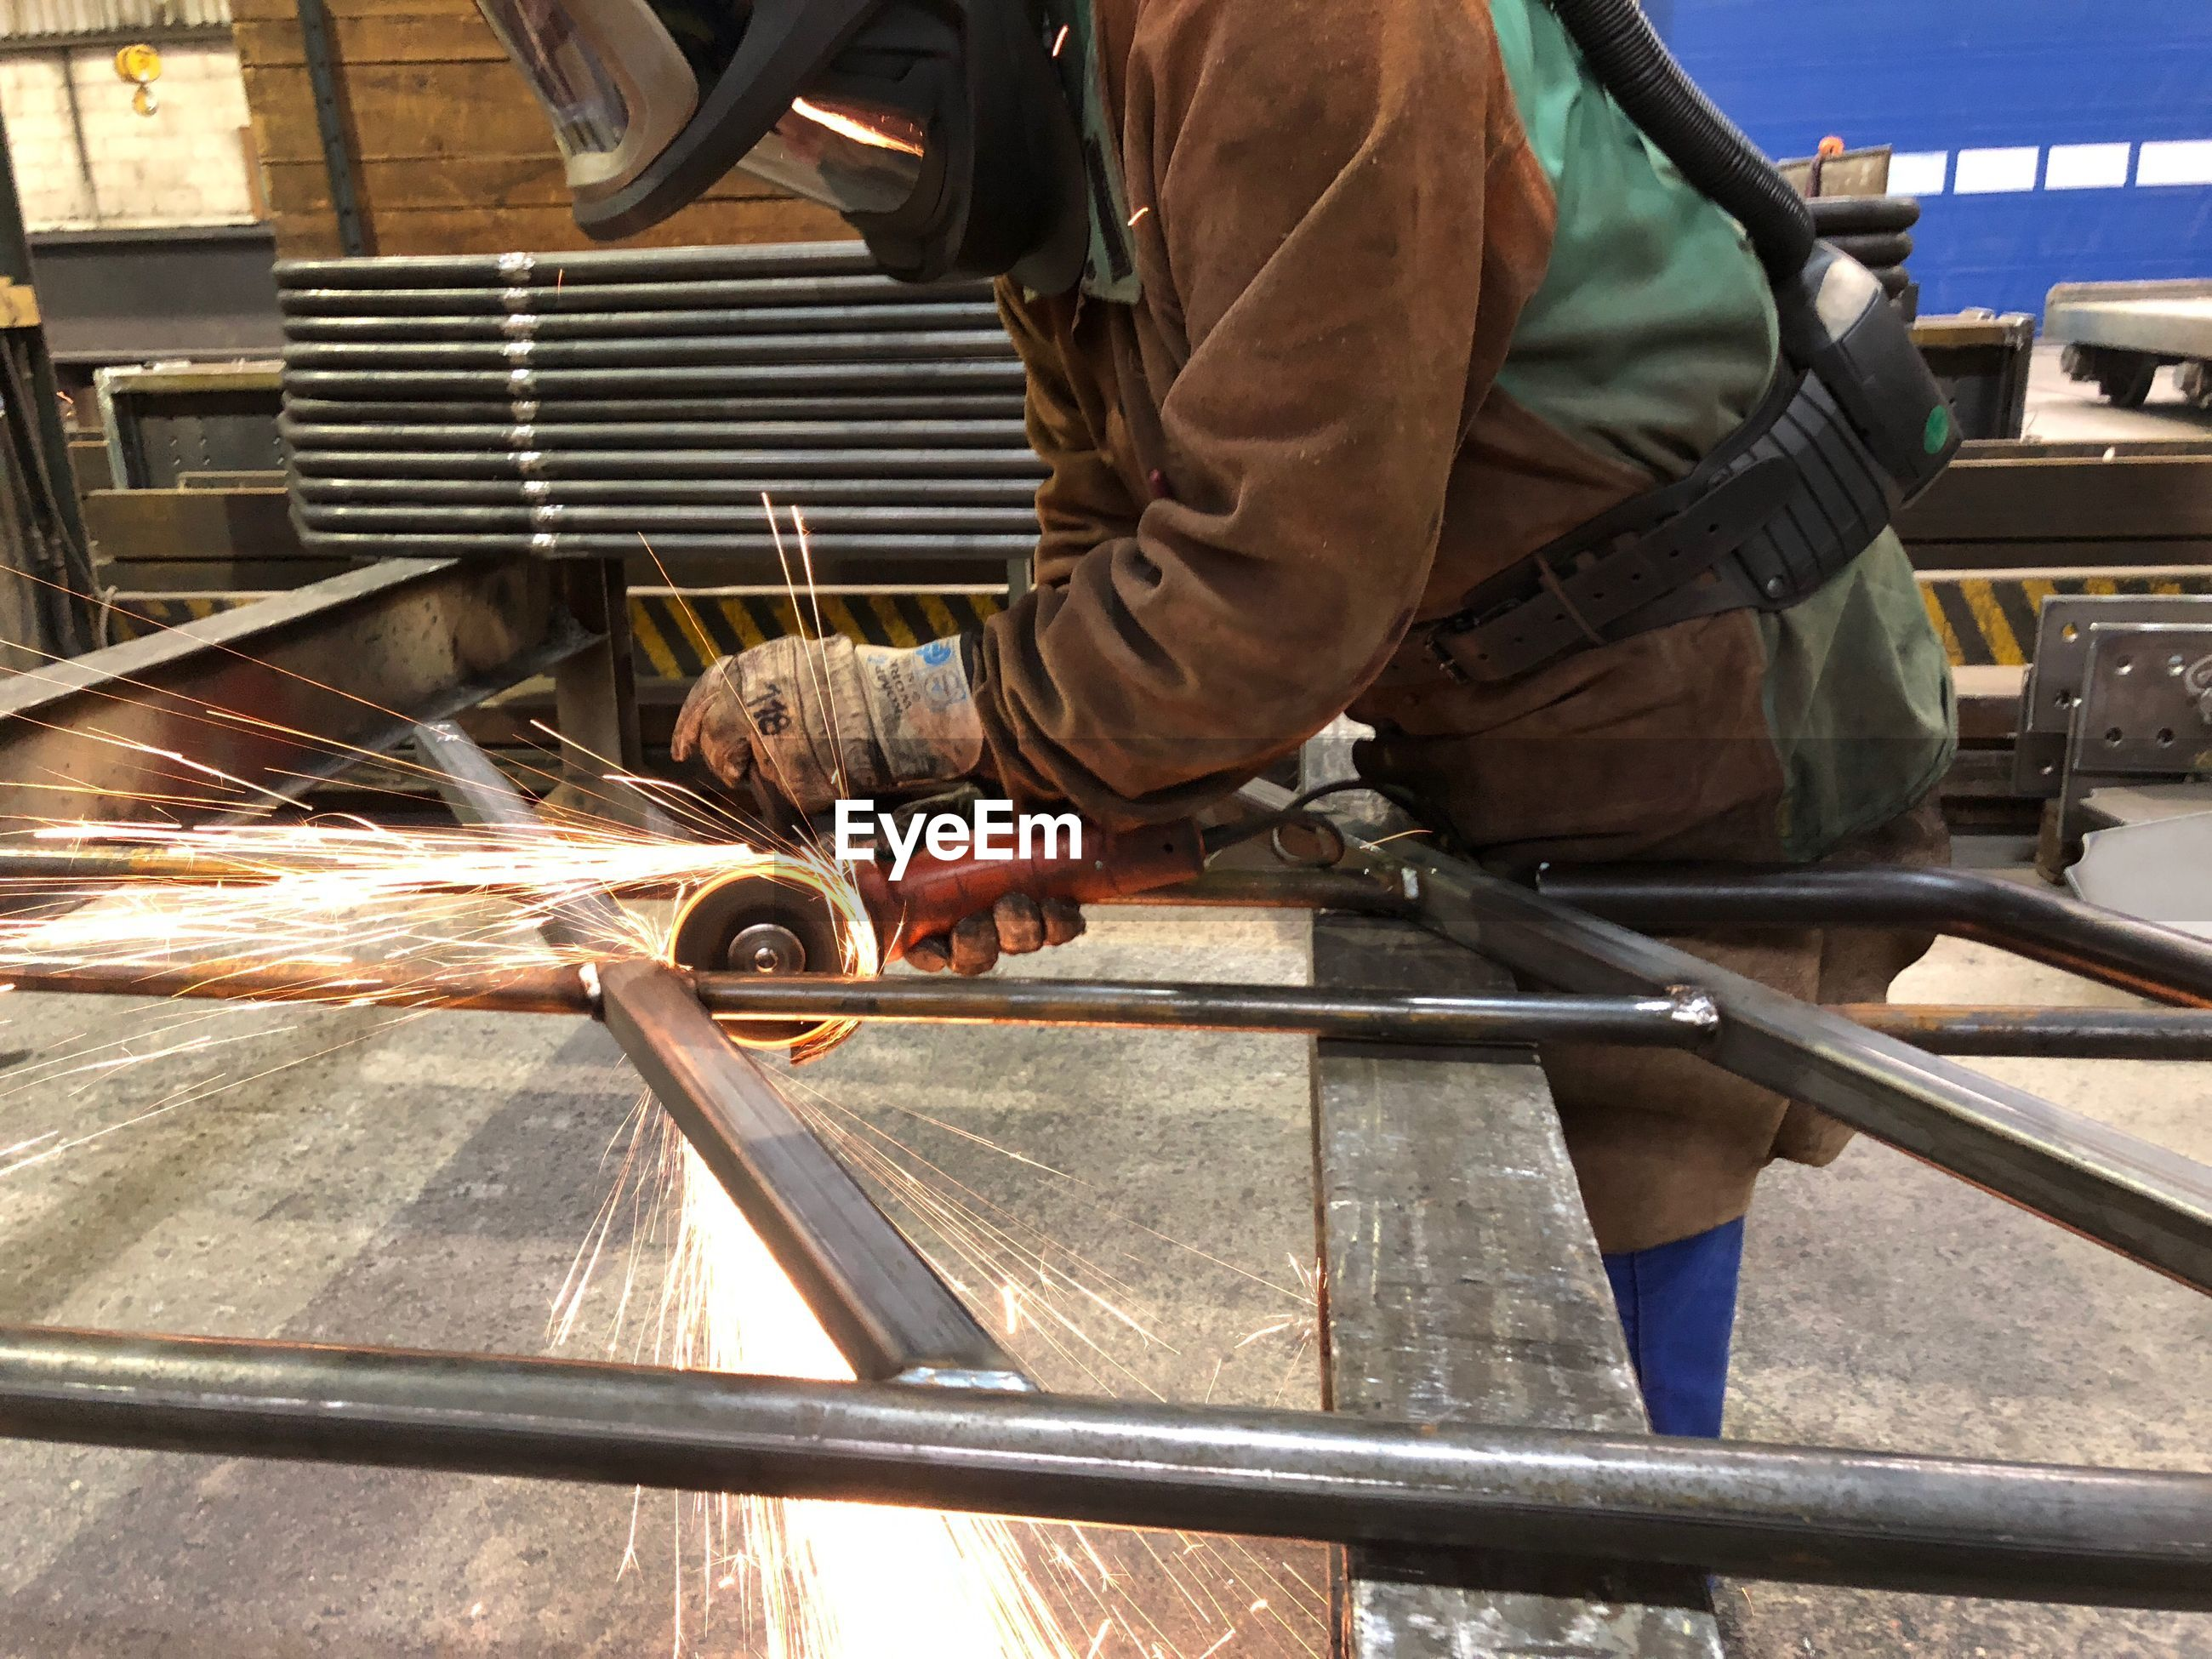 Man grinding metal in factory